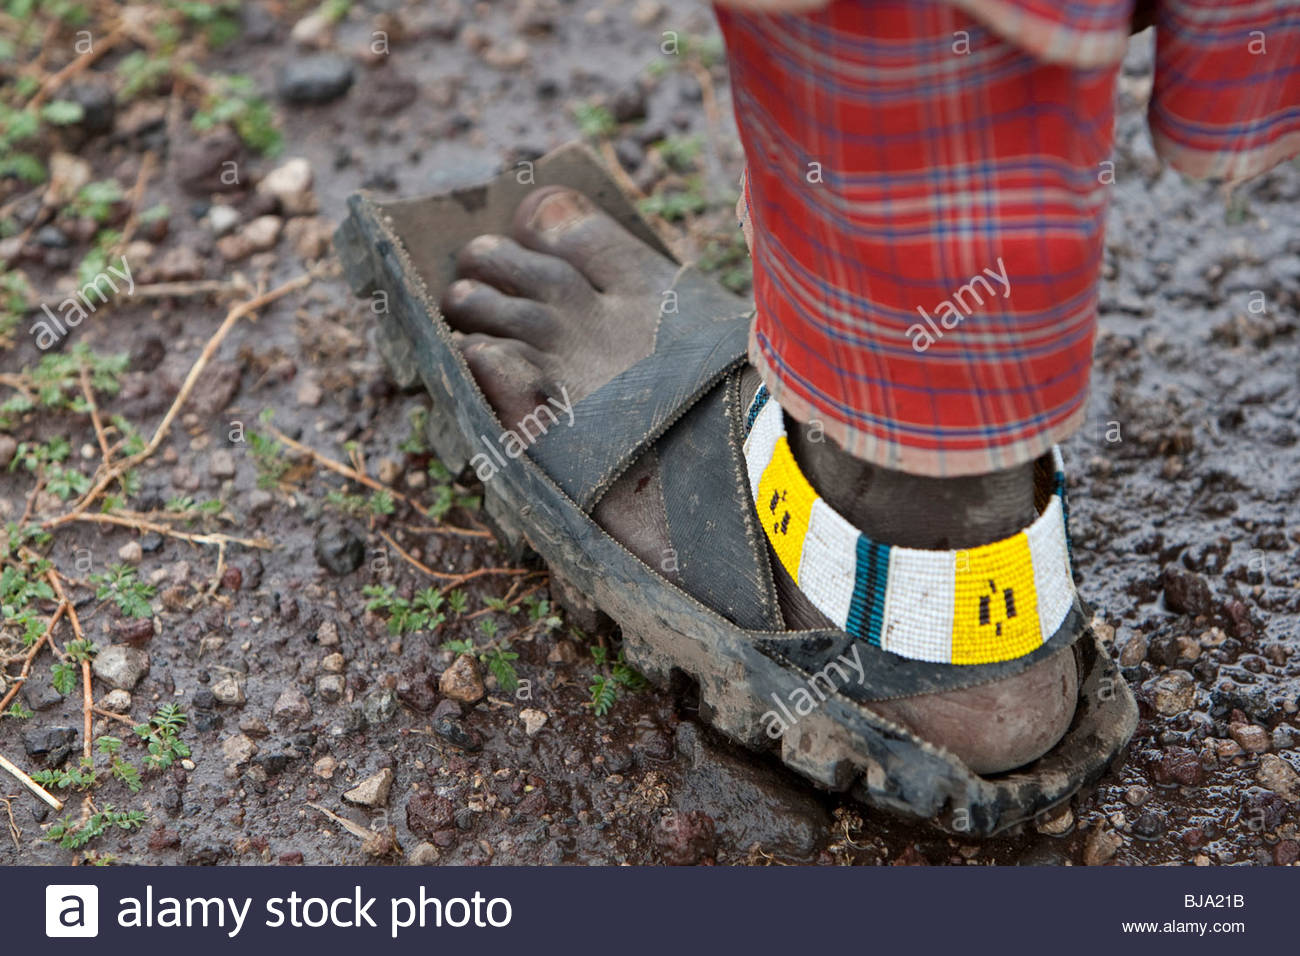 Sell Used Tires >> This maasai-mans sandals are made from old used car tires. Tanzania Stock Photo, Royalty Free ...